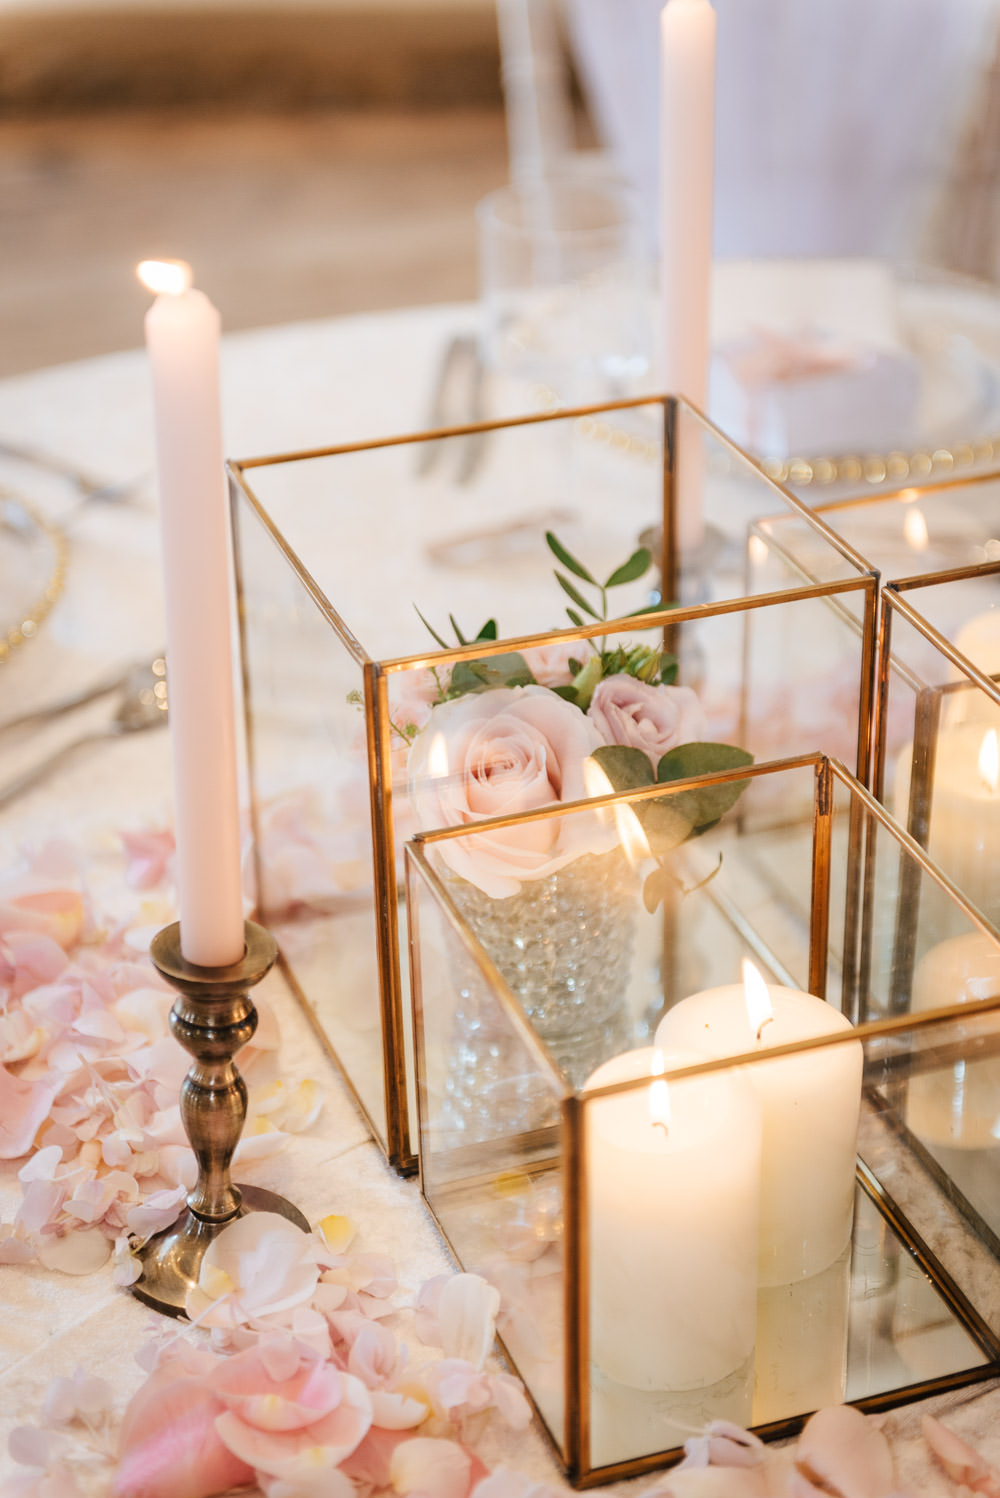 Table Decor Place Setting Pink Petals Candles Cherry Blossom Wedding Ideas Sugarbird Photography